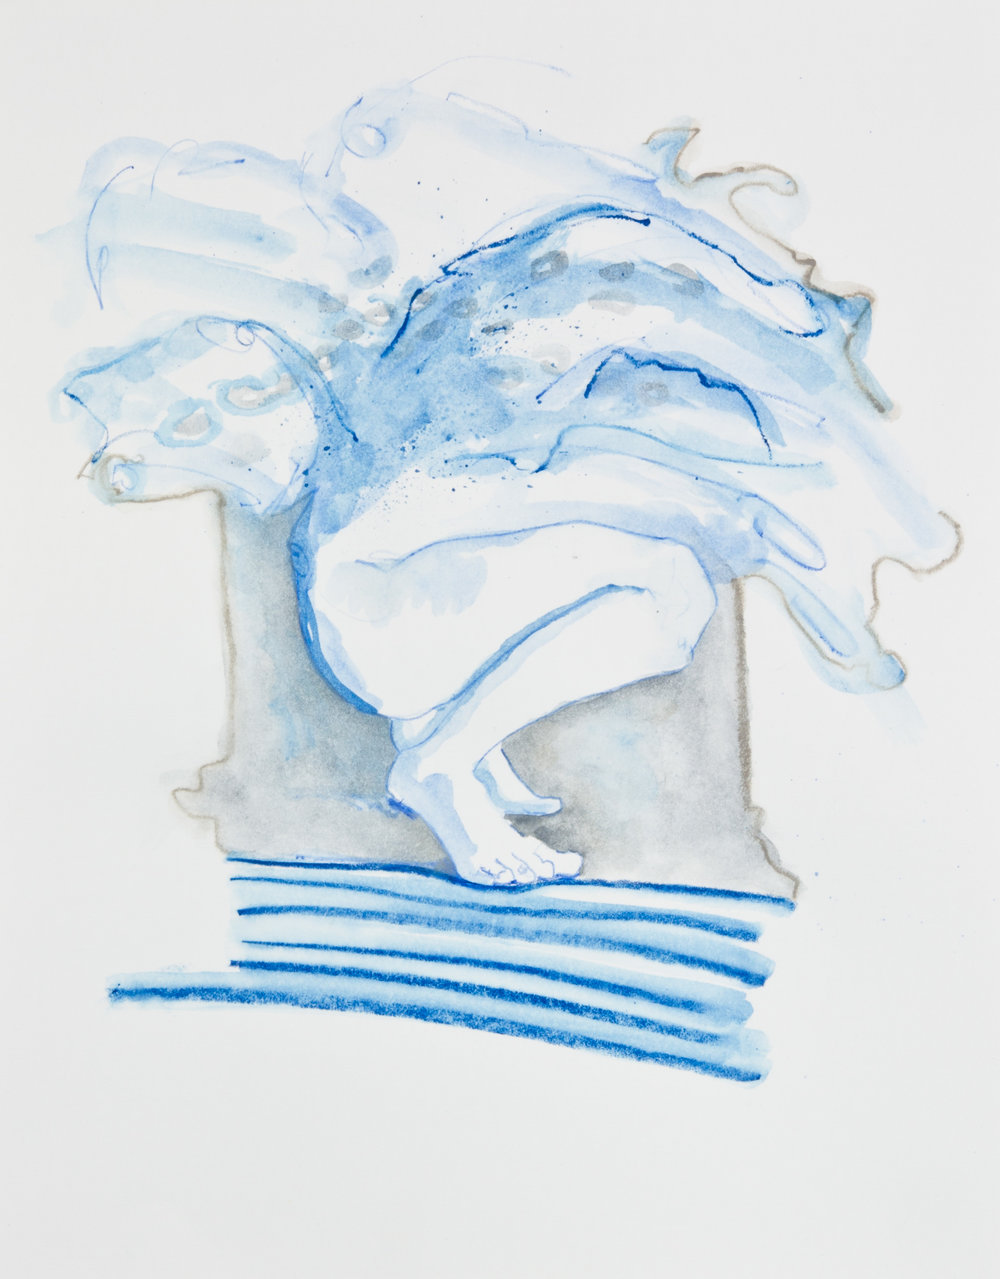 Swimming In Their Own Gravy, 2013, graphite, crayon and watercolor pencil on paper, 11x14 inches